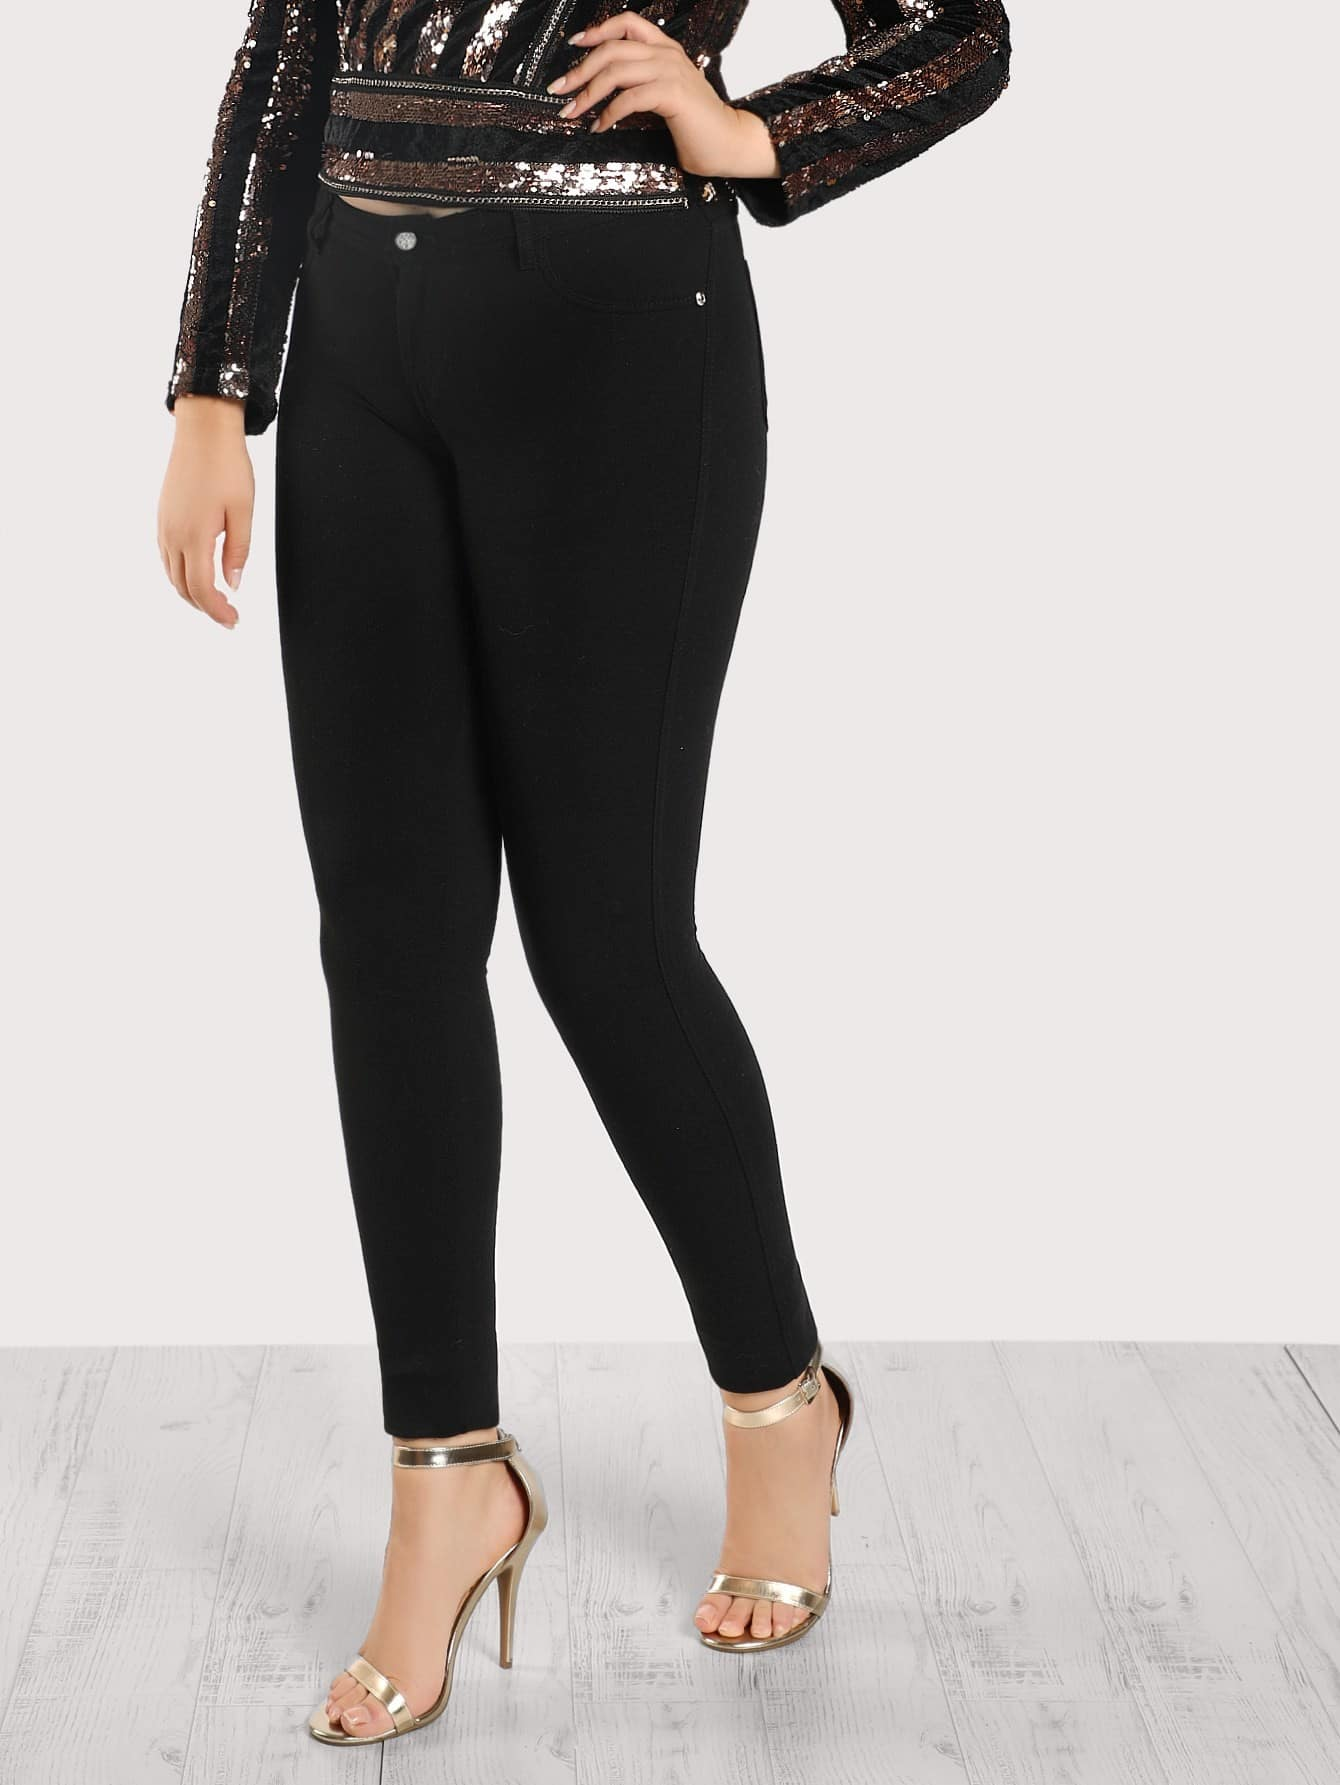 Image of Mid Rise Fitted Jegging Pants